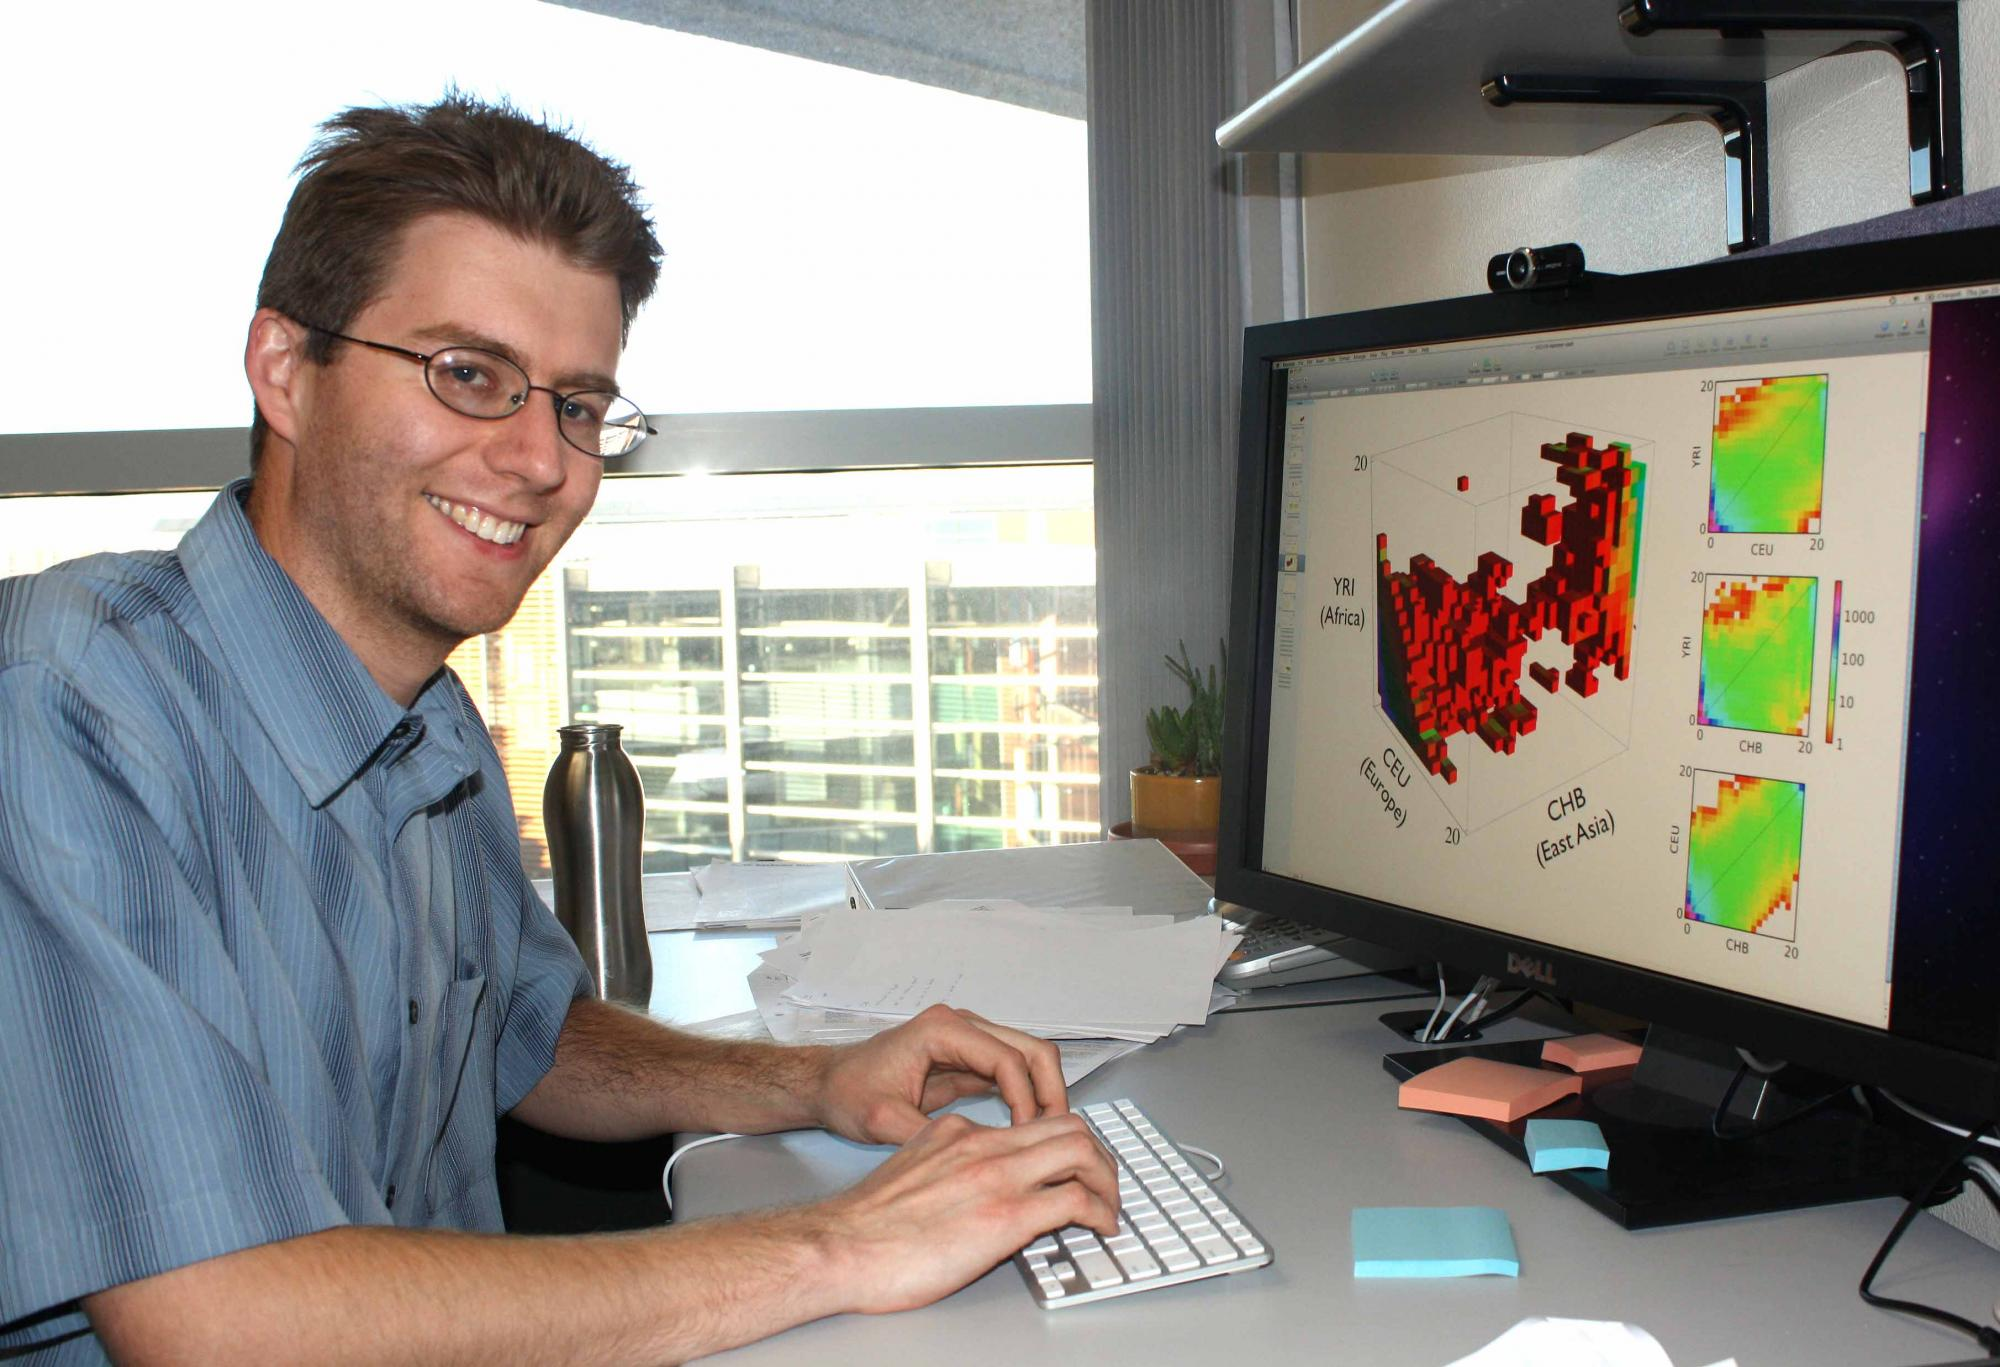 A physicist by training, UA assistant professor Ryan Gutenkunst became fascinated with evolutionary questions. The software he developed allows researchers to put dates on events such as humans migrating out of Africa.